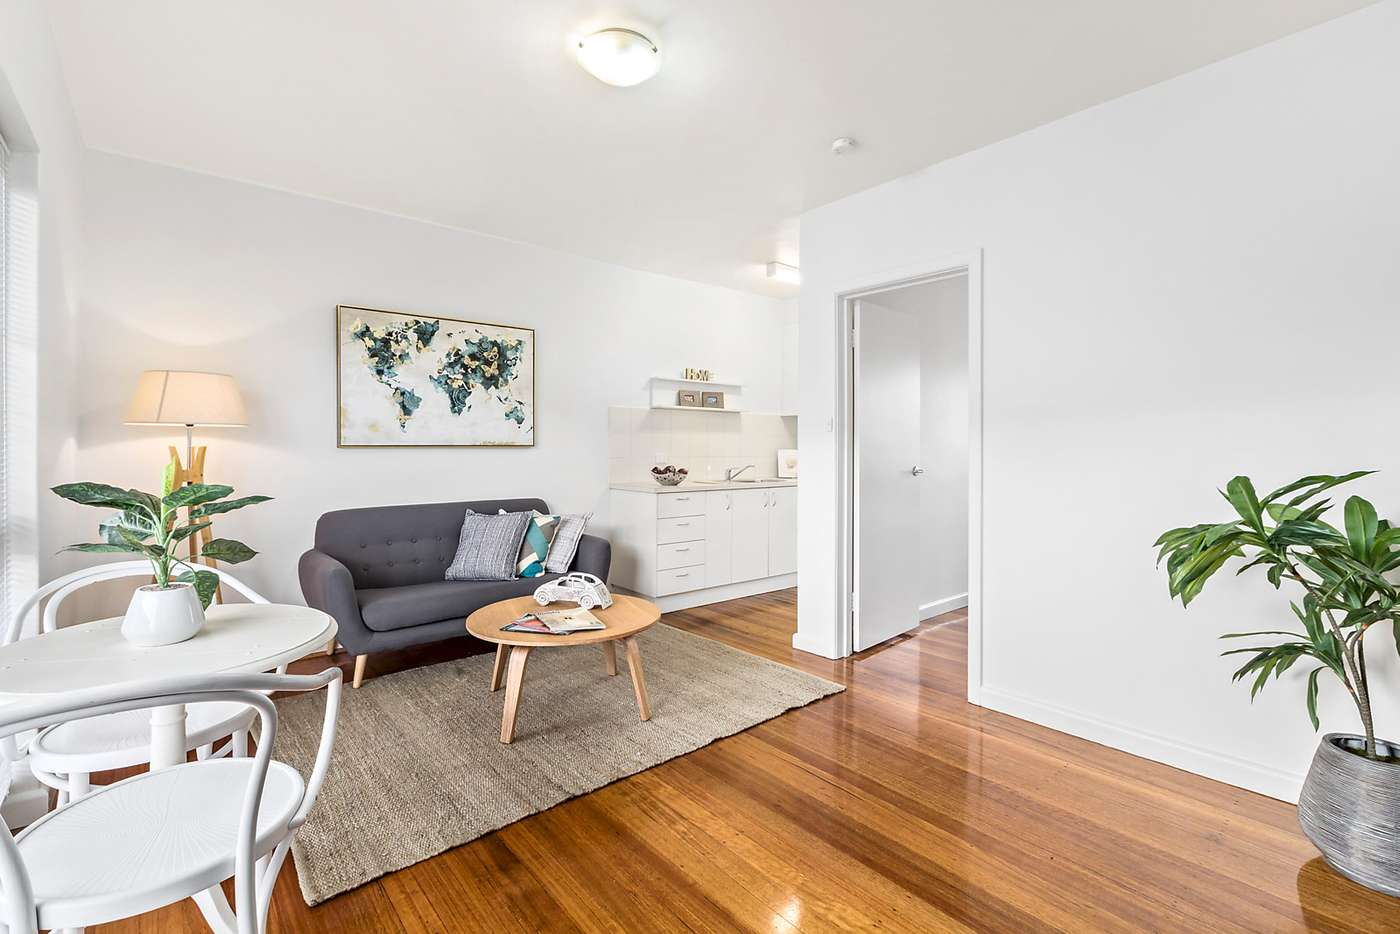 Main view of Homely apartment listing, 2/125 Grange Road, Glen Huntly VIC 3163